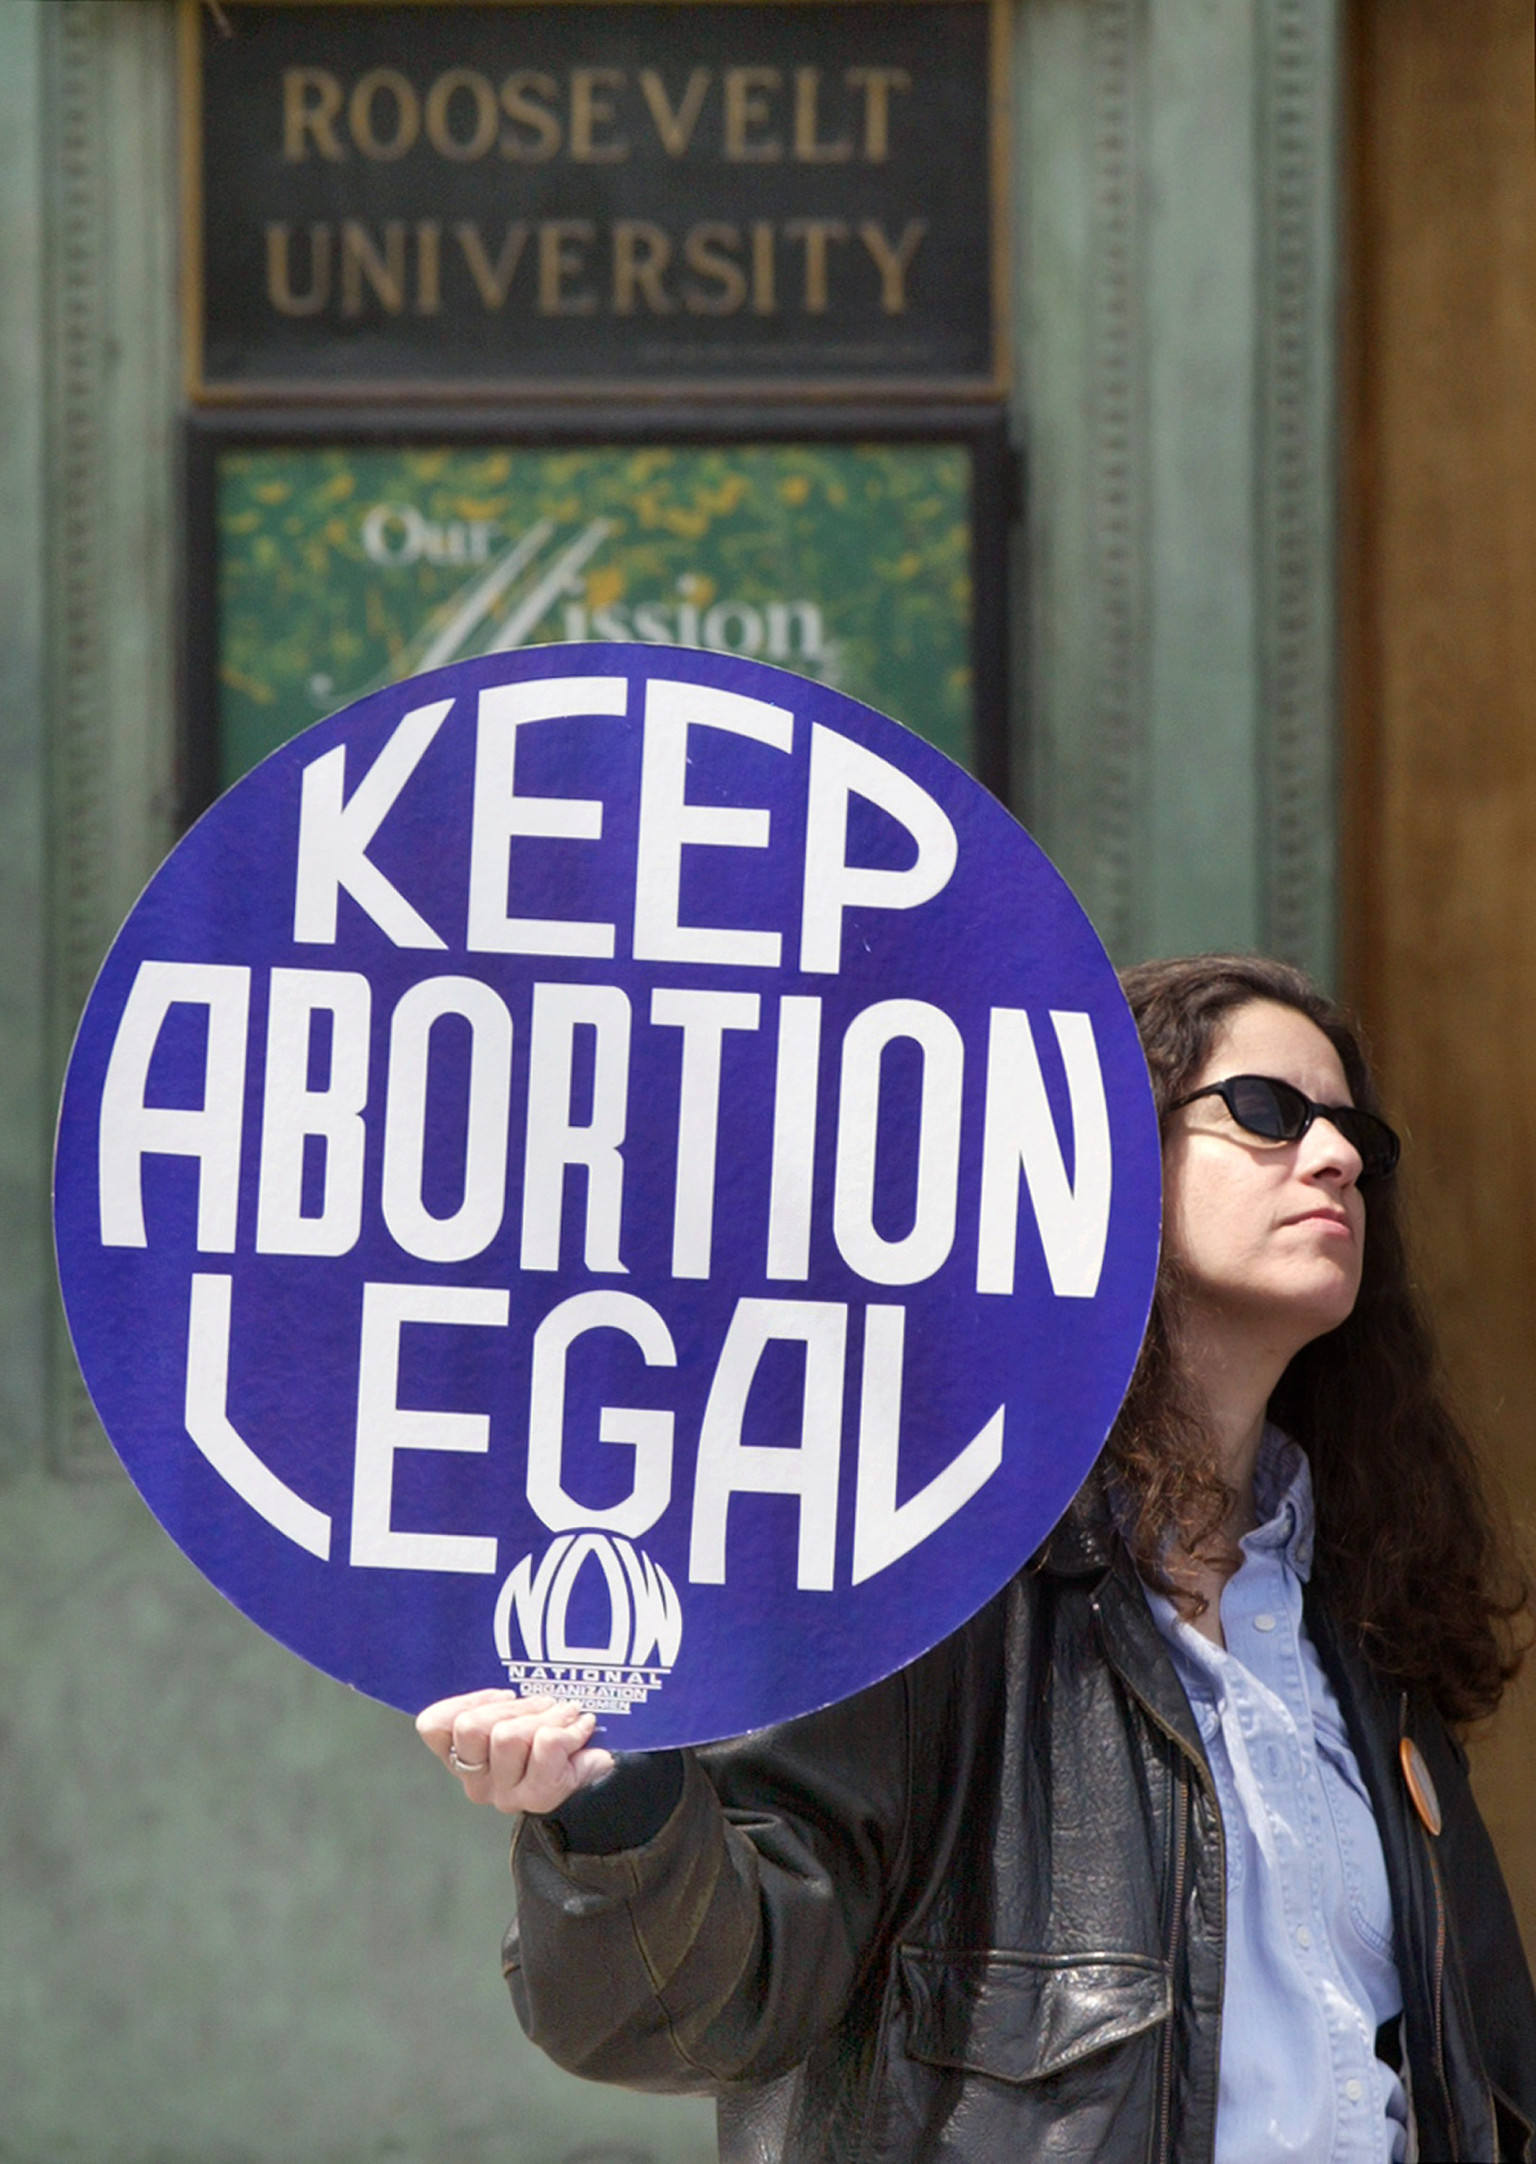 on abortion should be legal essay on abortion should be legal